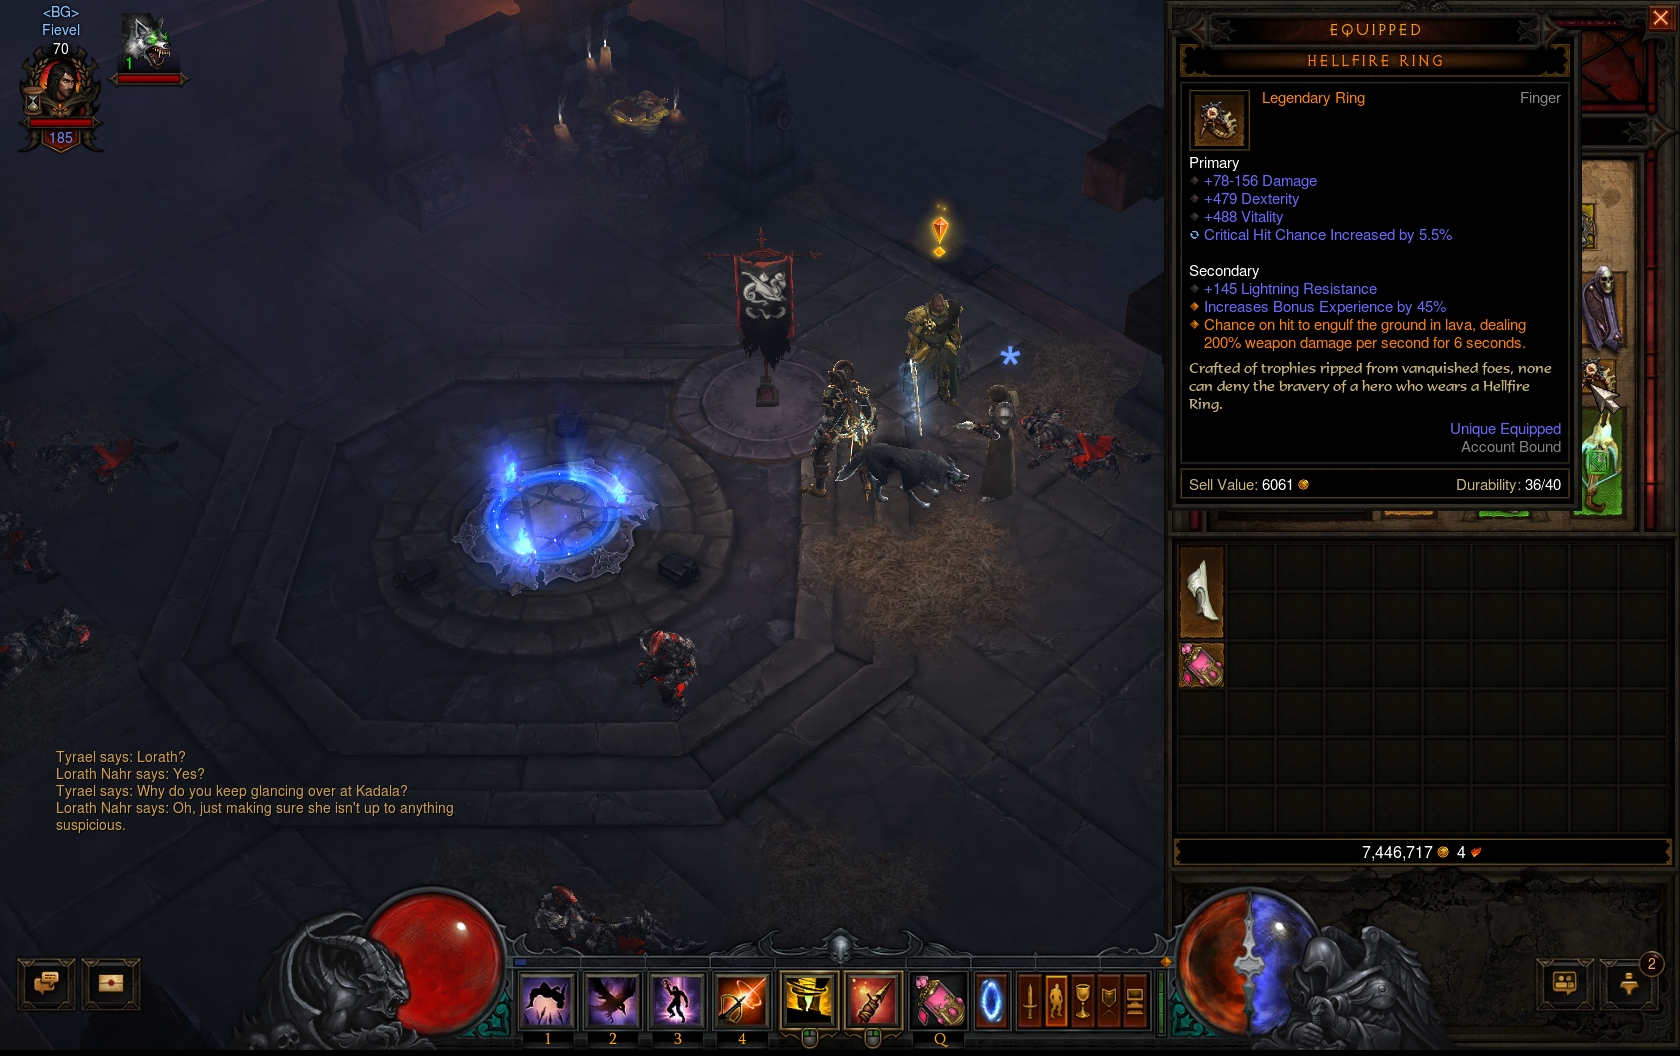 Diablo 3 Trading Post: Show us your Legendary